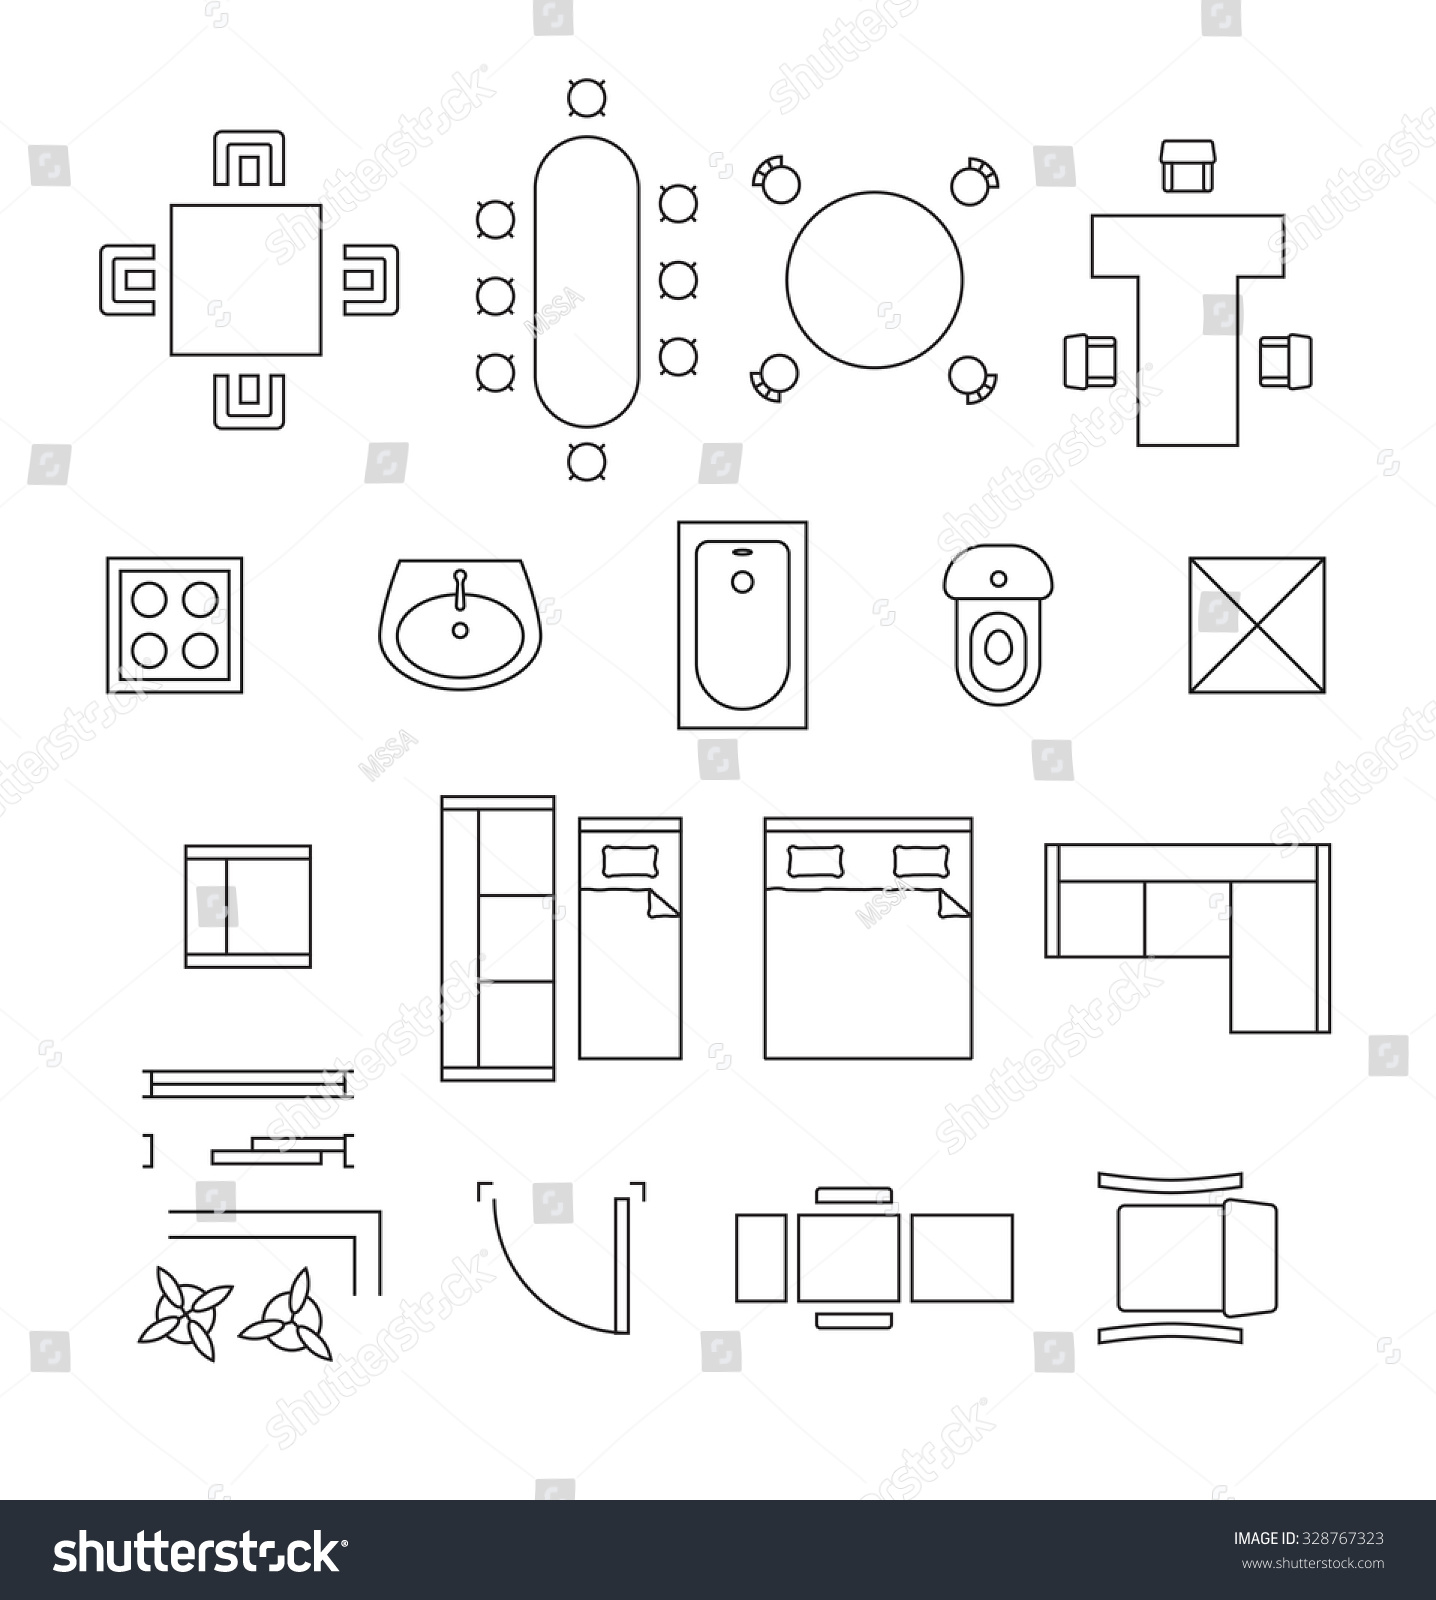 Furniture Linear Vector Symbols Floor Plan Stock Vector